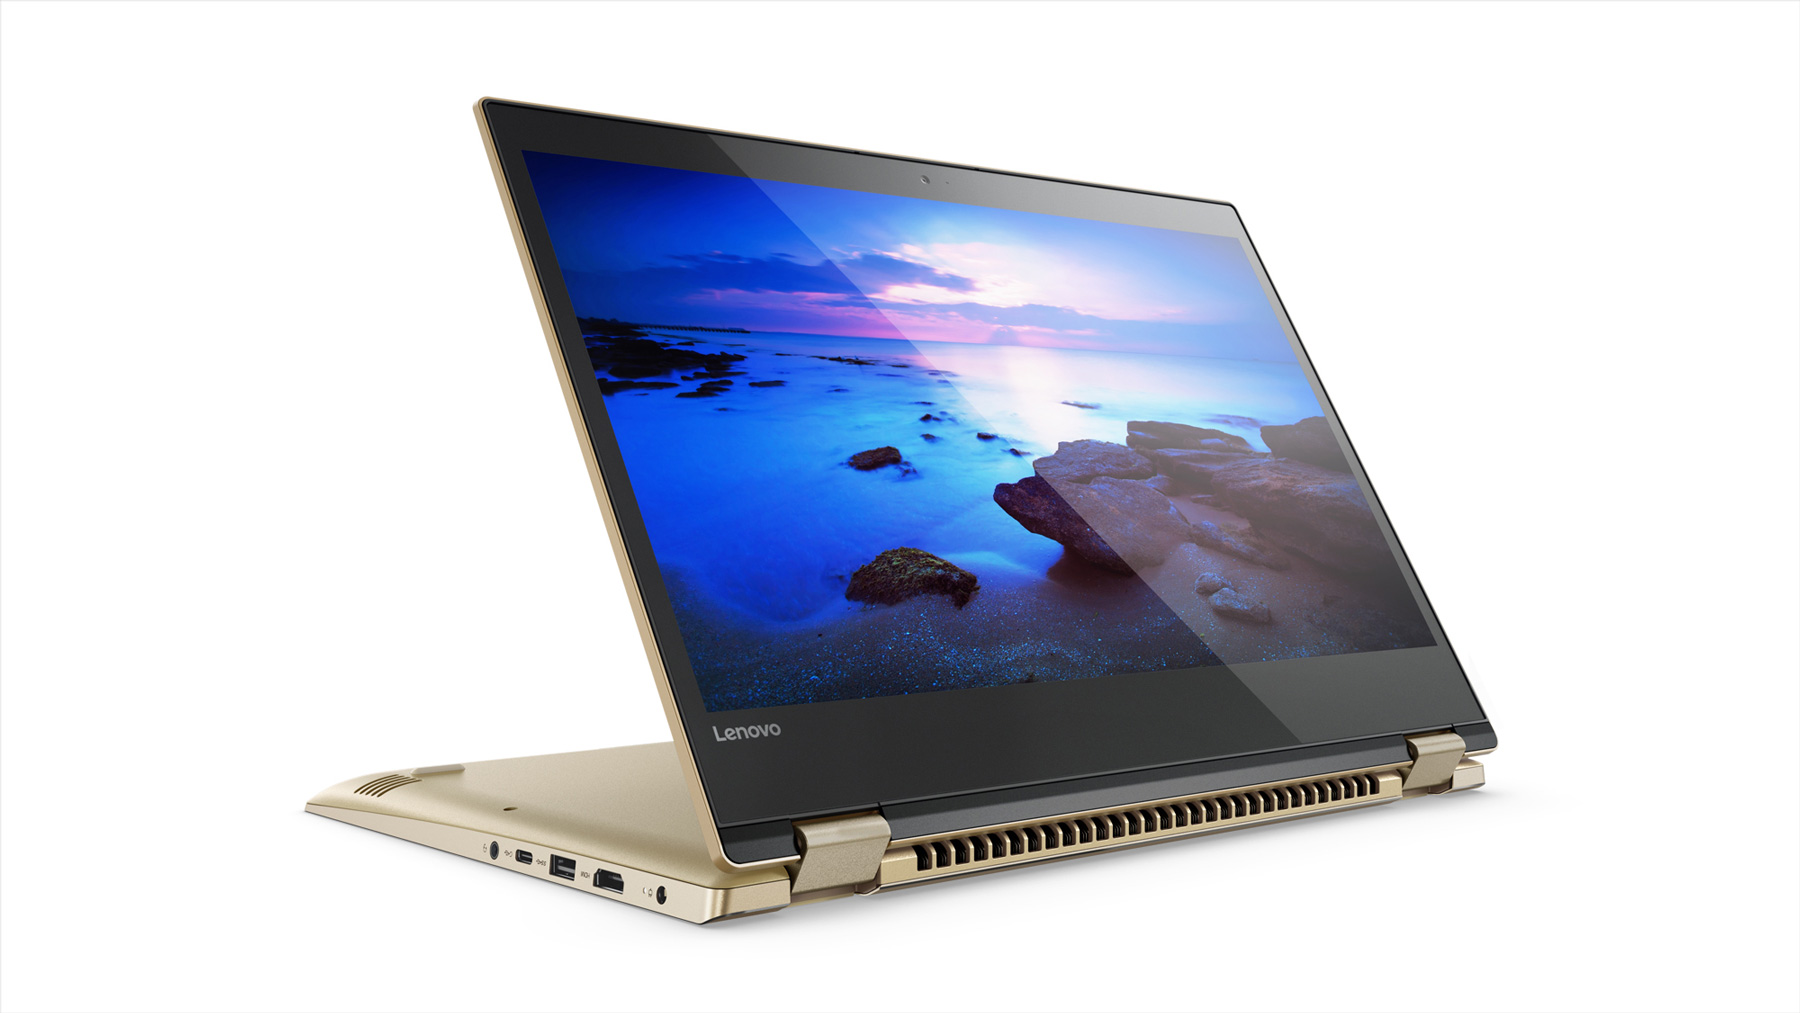 Фото  Ультрабук Lenovo Yoga 520 Gold Metallic (81C800F8RA)